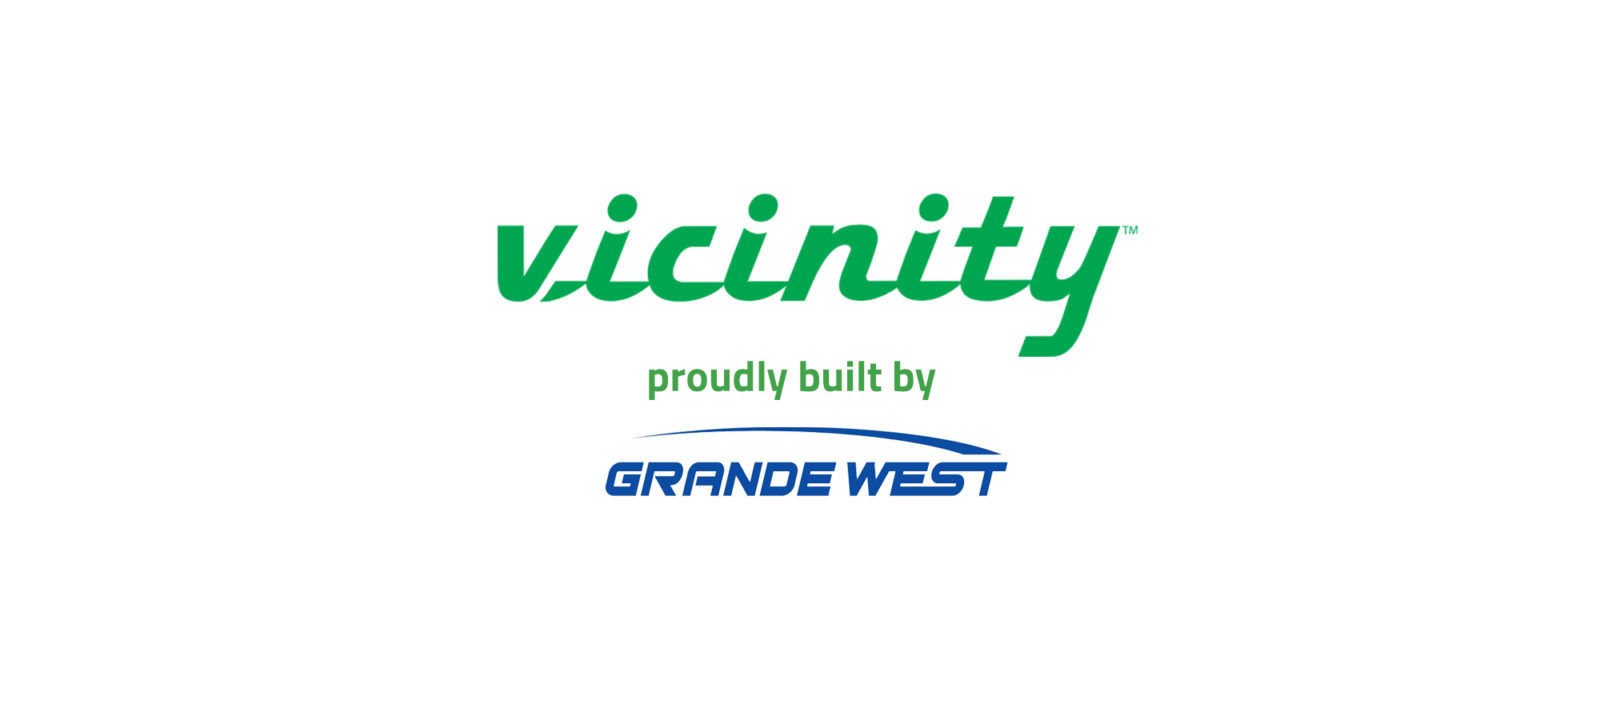 Grand West / Vicinity